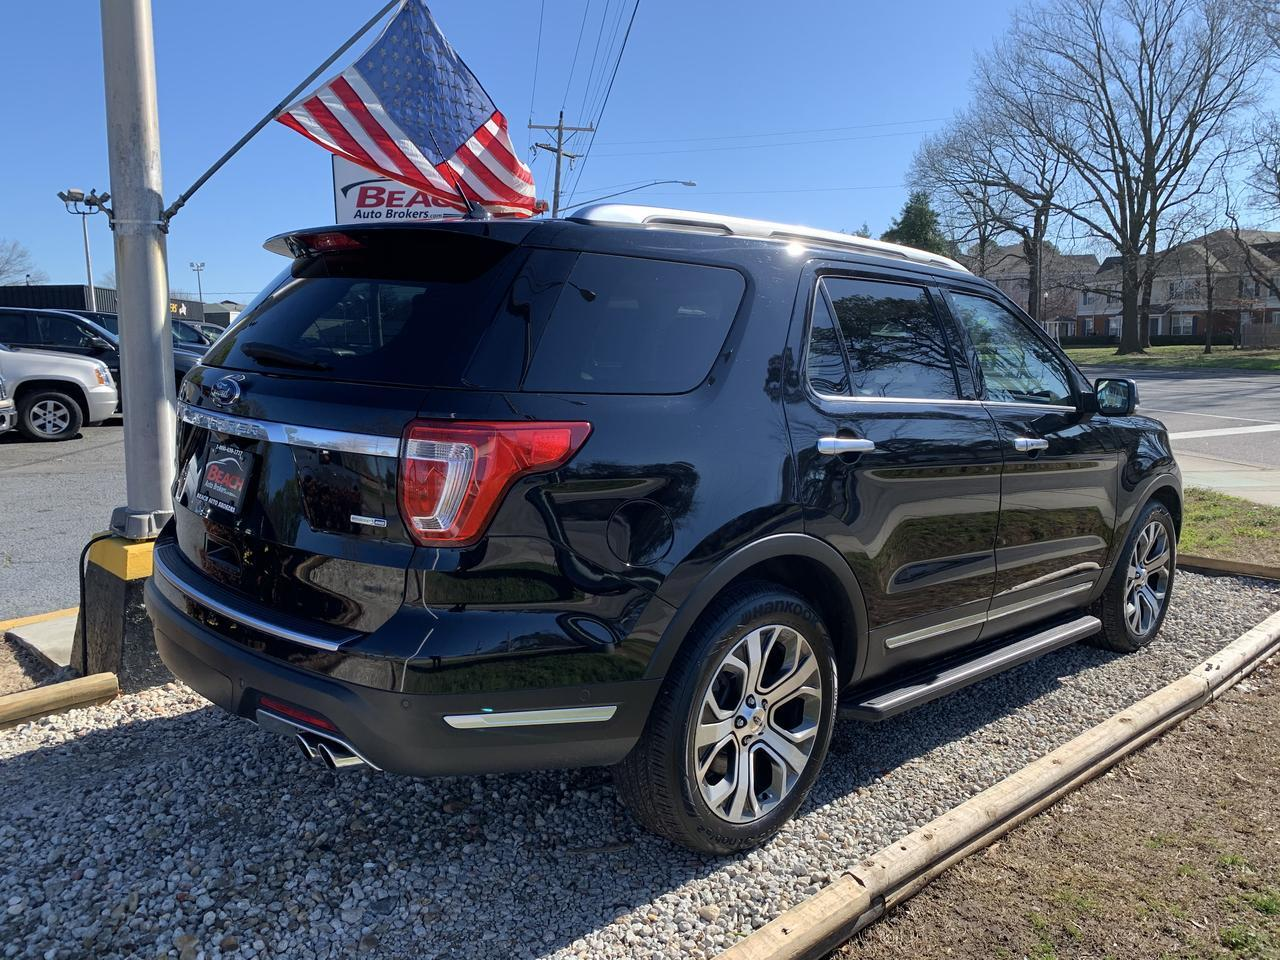 2018 FORD EXPLORER PLATINUM 4X4, WARRANTY, LEATHER, SUNROOF, NAV, HEATED/COOLED SEATS, 1 OWNER, PRISTINE! Norfolk VA